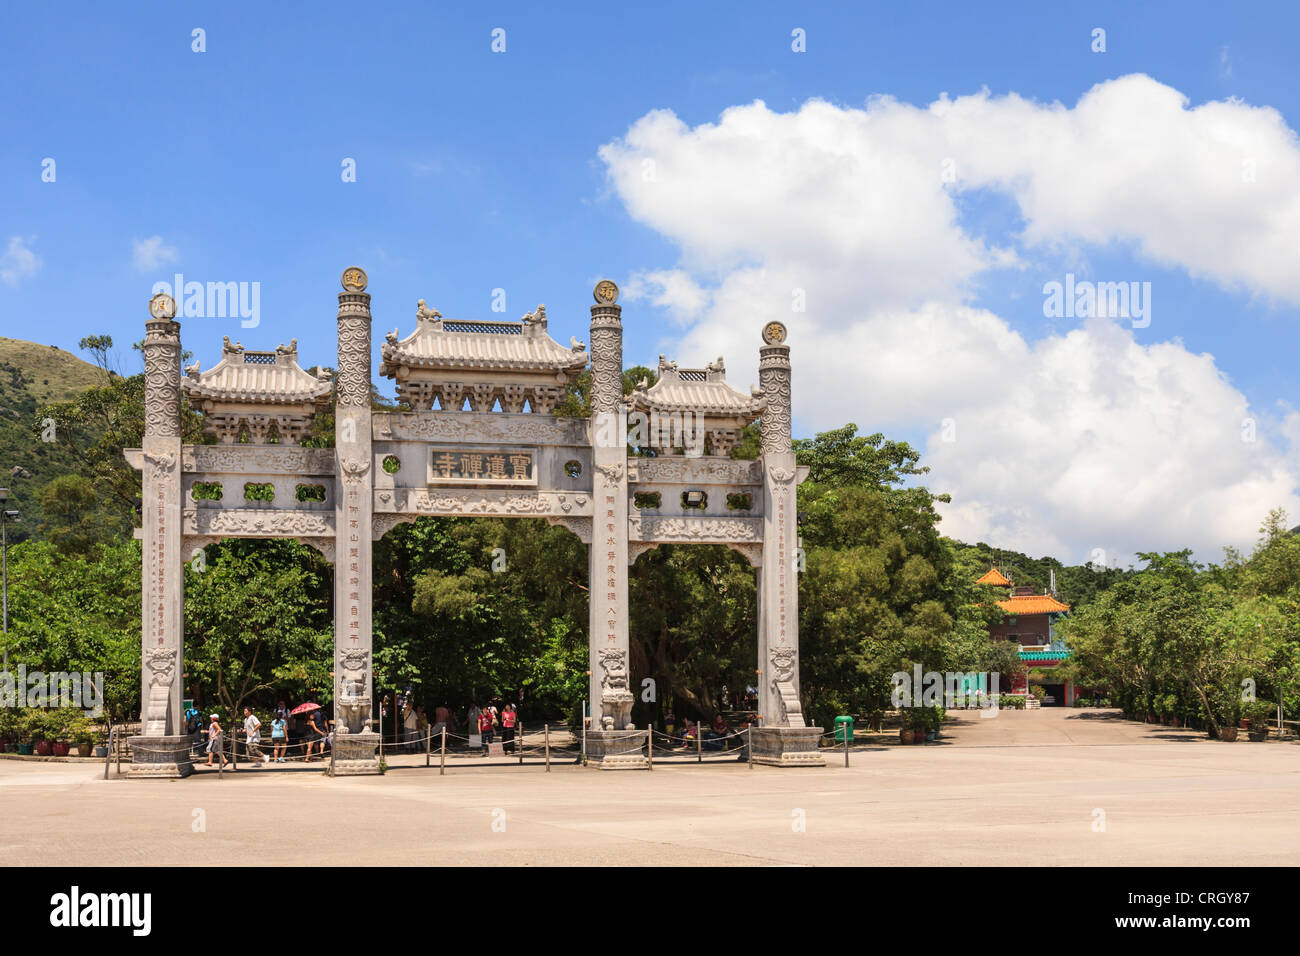 Tourists at the main gate of Po Lin Monastery on Lantau Island, Hong Kong. - Stock Image